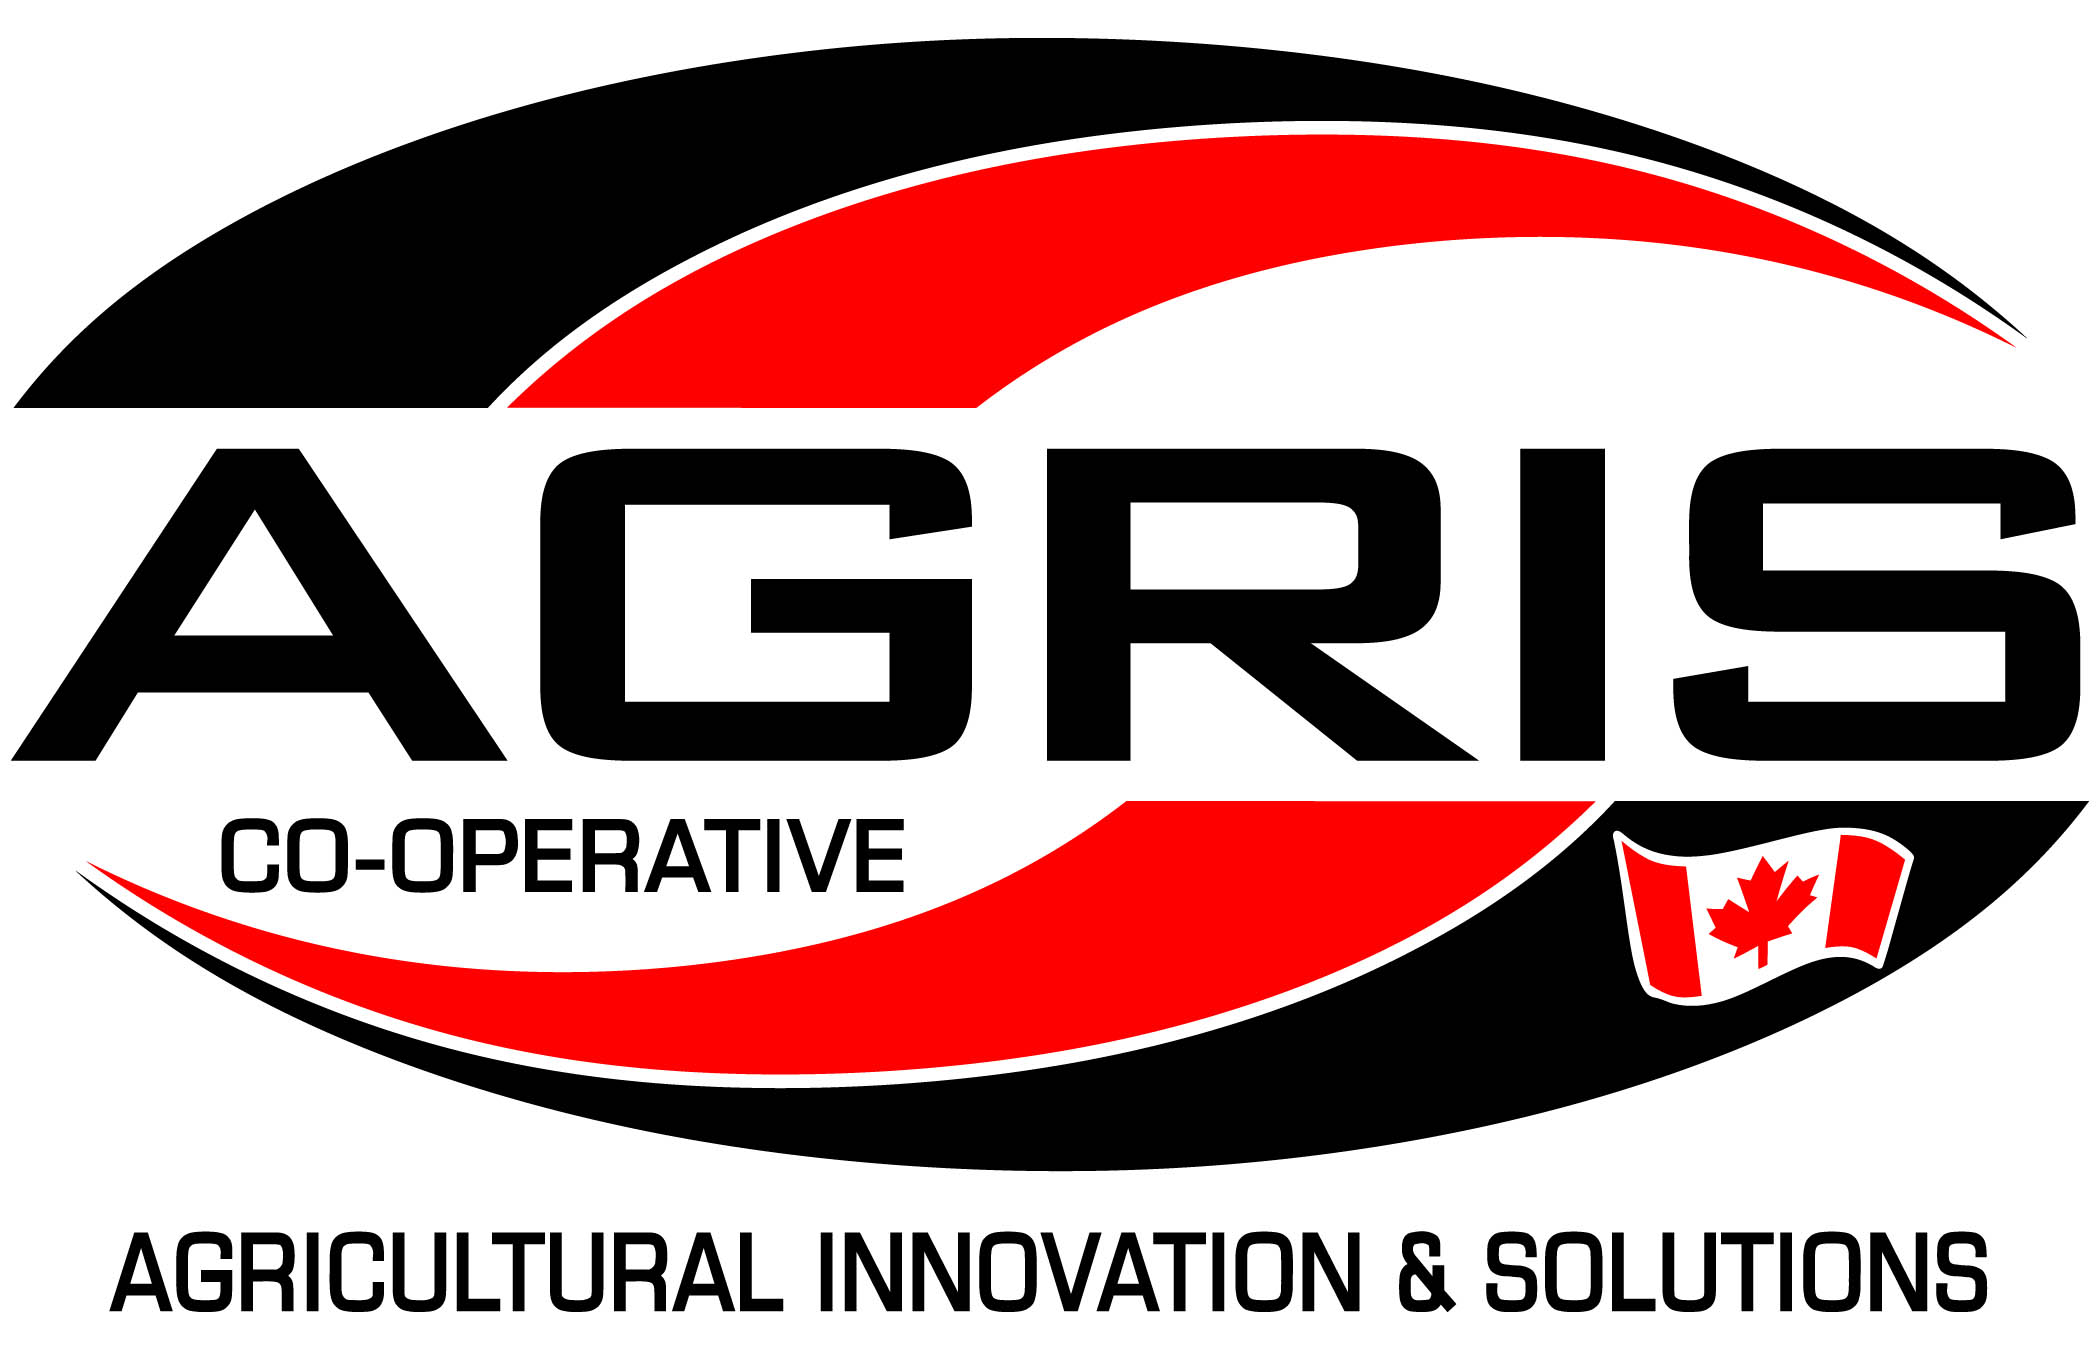 AGRIS CO-OPERATIVE EXPANDS SERVICE OFFERINGS AND INPUT CAPACITY IN ESSEX AREA